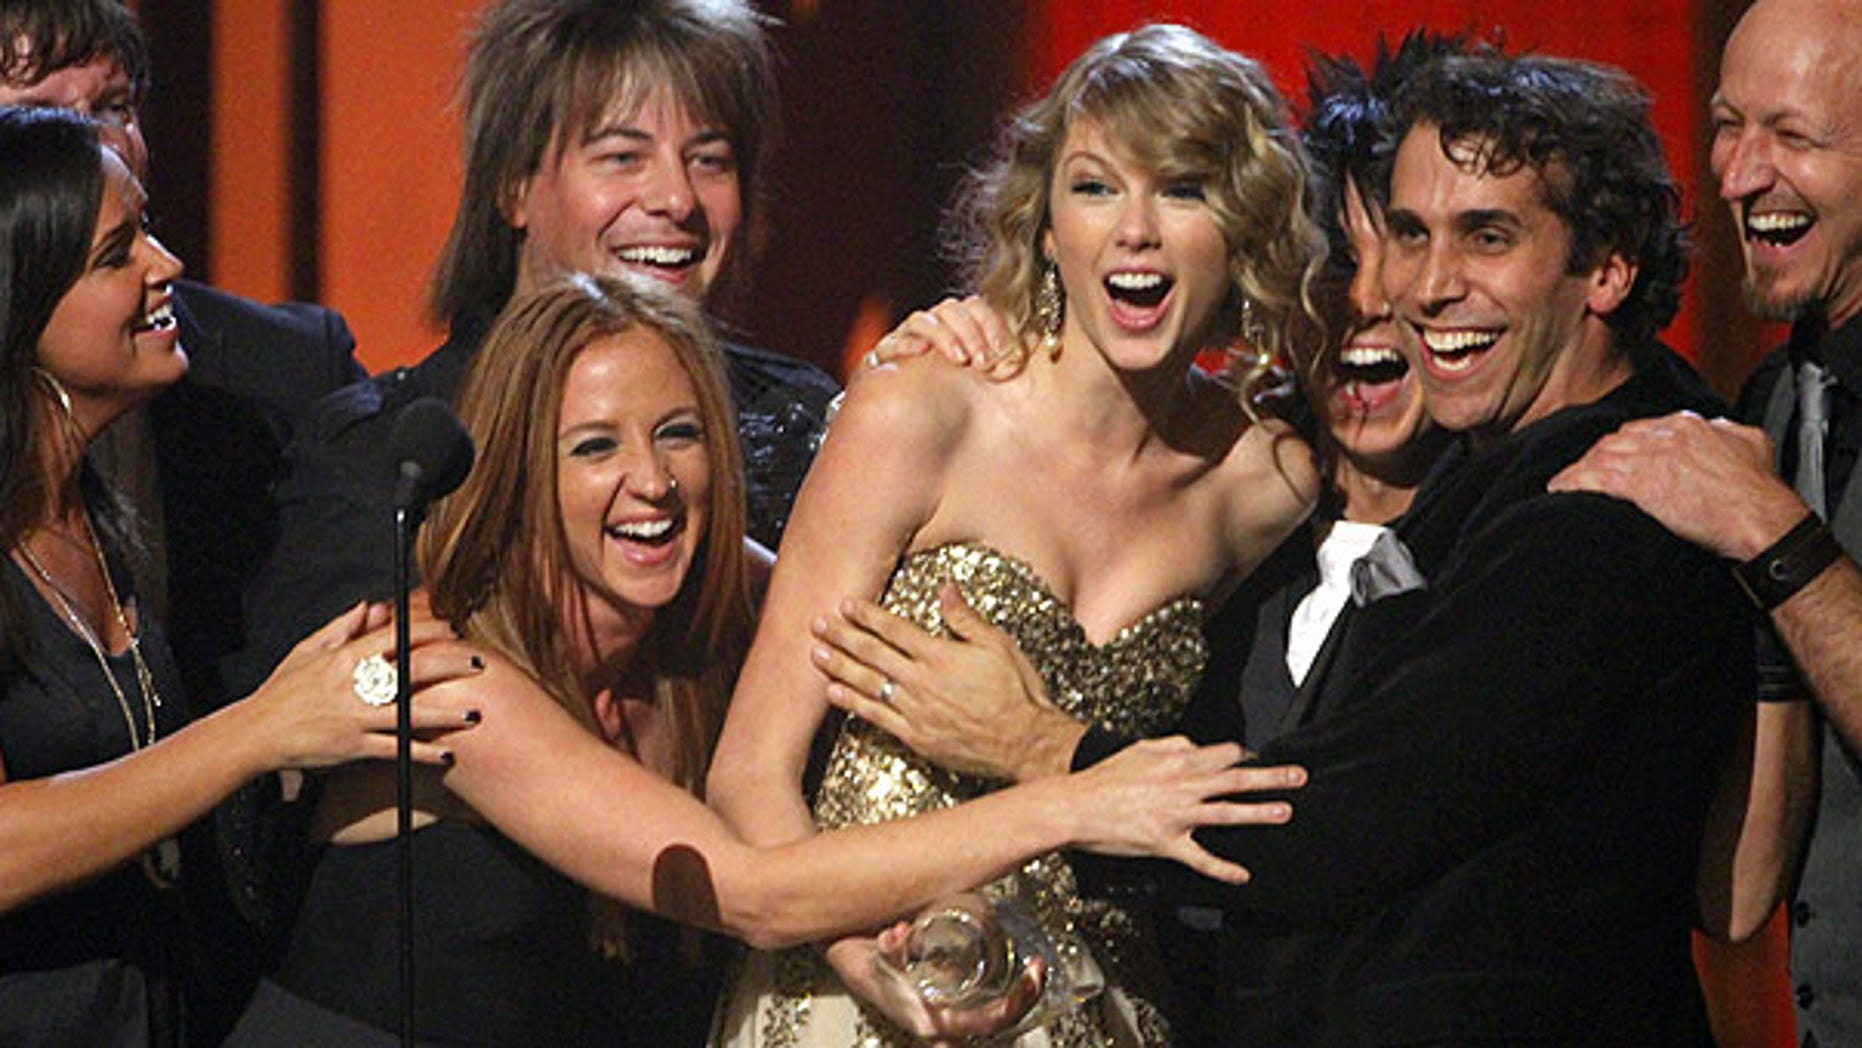 Nov. 11: Taylor Swift accepts the Entertainer of the Year Award on stage during the 43rd Annual Country Music Awards in Nashville, Tenn. (AP)